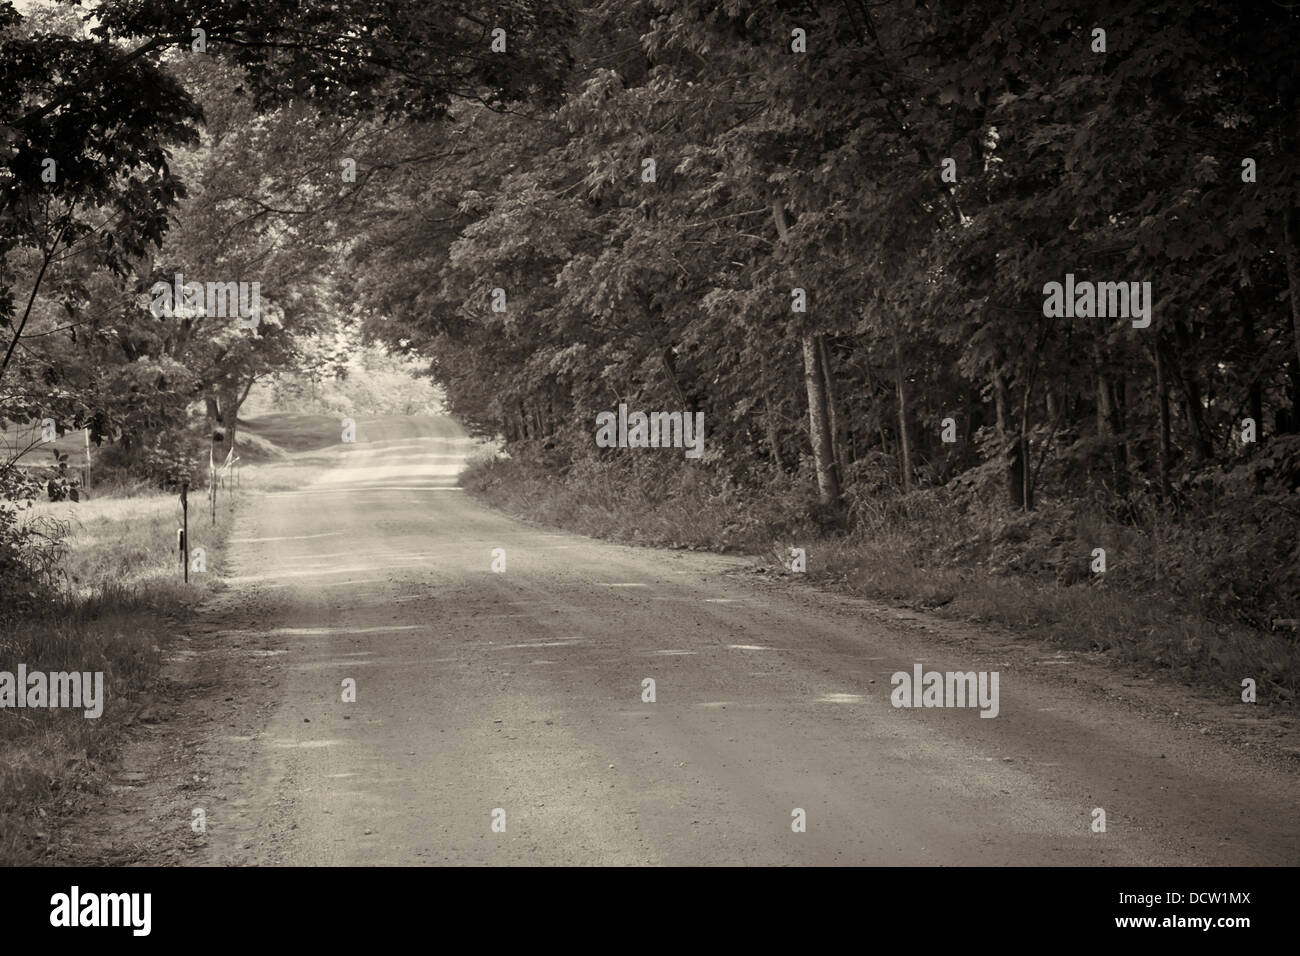 unpaved rural country road near Hardwick, Vermont, New England, USA - Stock Image